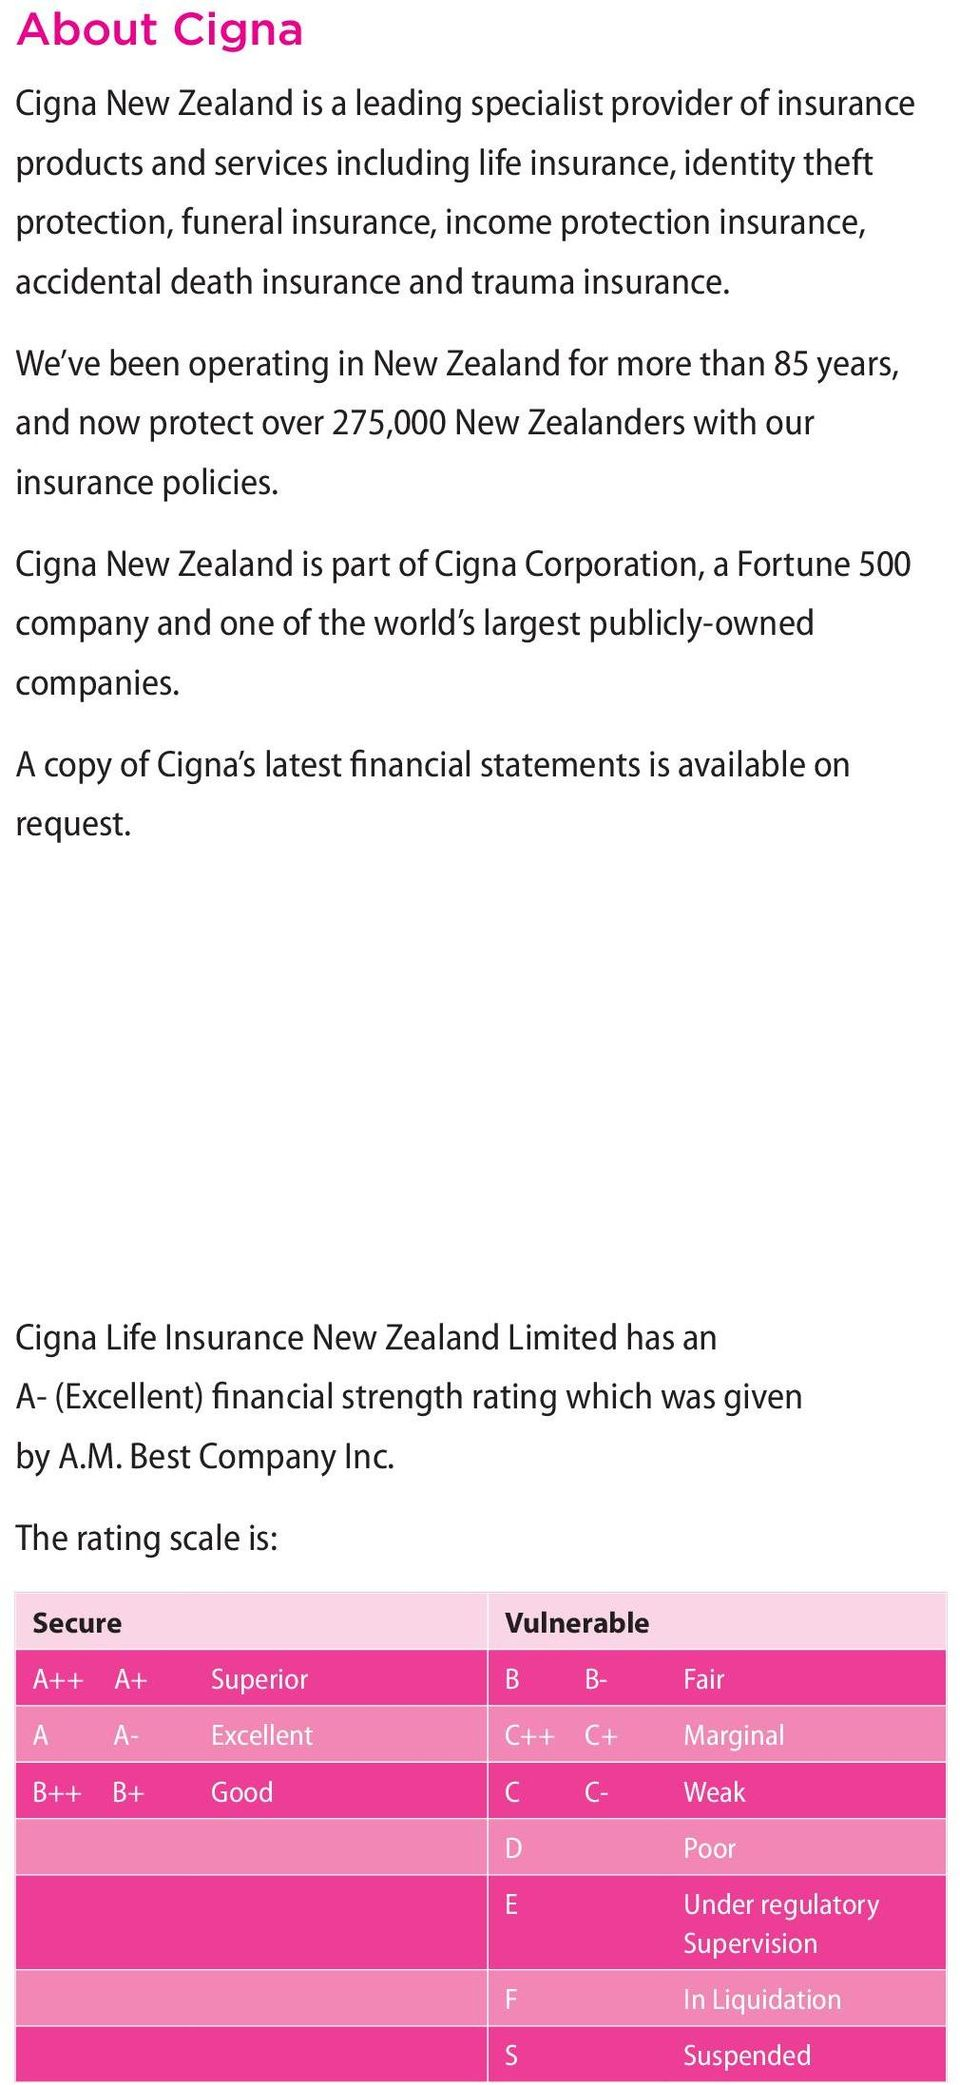 Cigna New Zealand is part of Cigna Corporation, a Fortune 500 company and one of the world s largest publicly-owned companies. A copy of Cigna s latest financial statements is available on request.